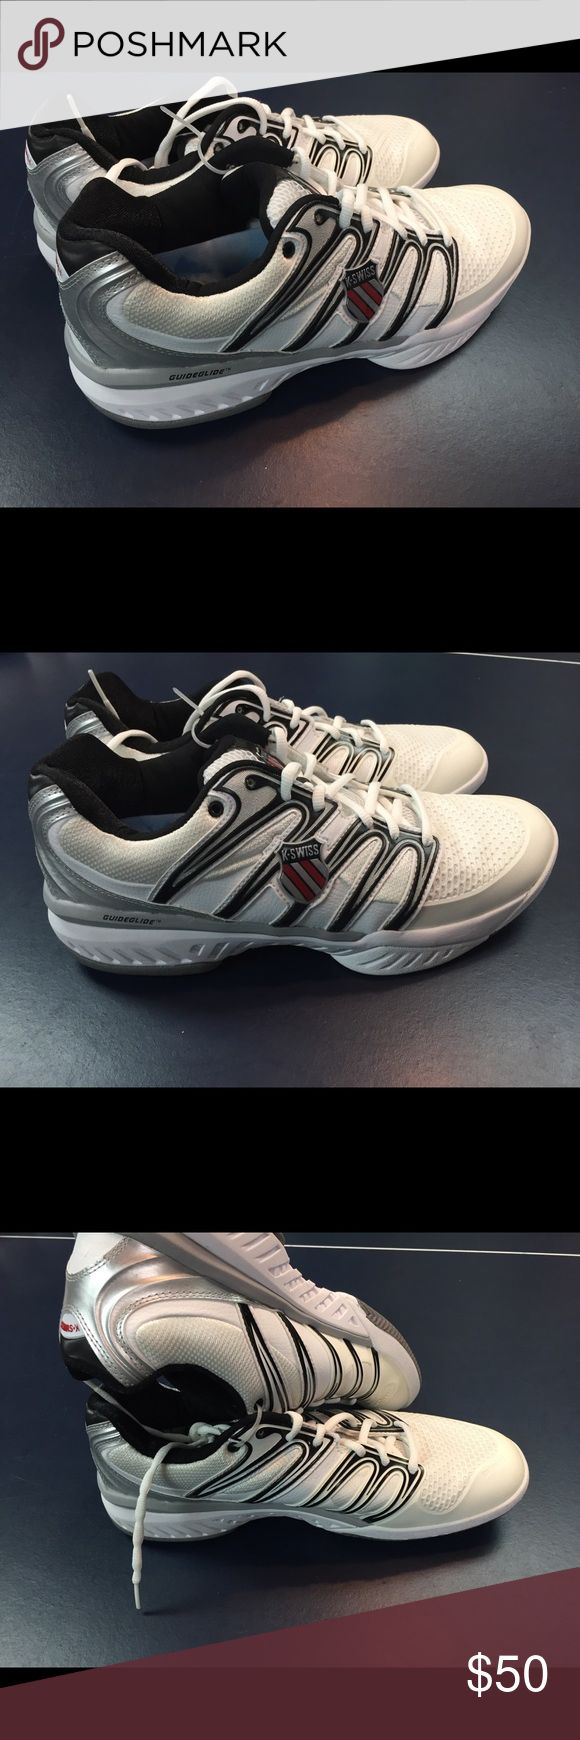 K•Swiss men's shoes size 12, new Price is for 1 pair of men's size 12. Shoes are new, unworn and out of box. Does not include manufacturers packaging. K Swiss tennis shoes. K Swiss Shoes